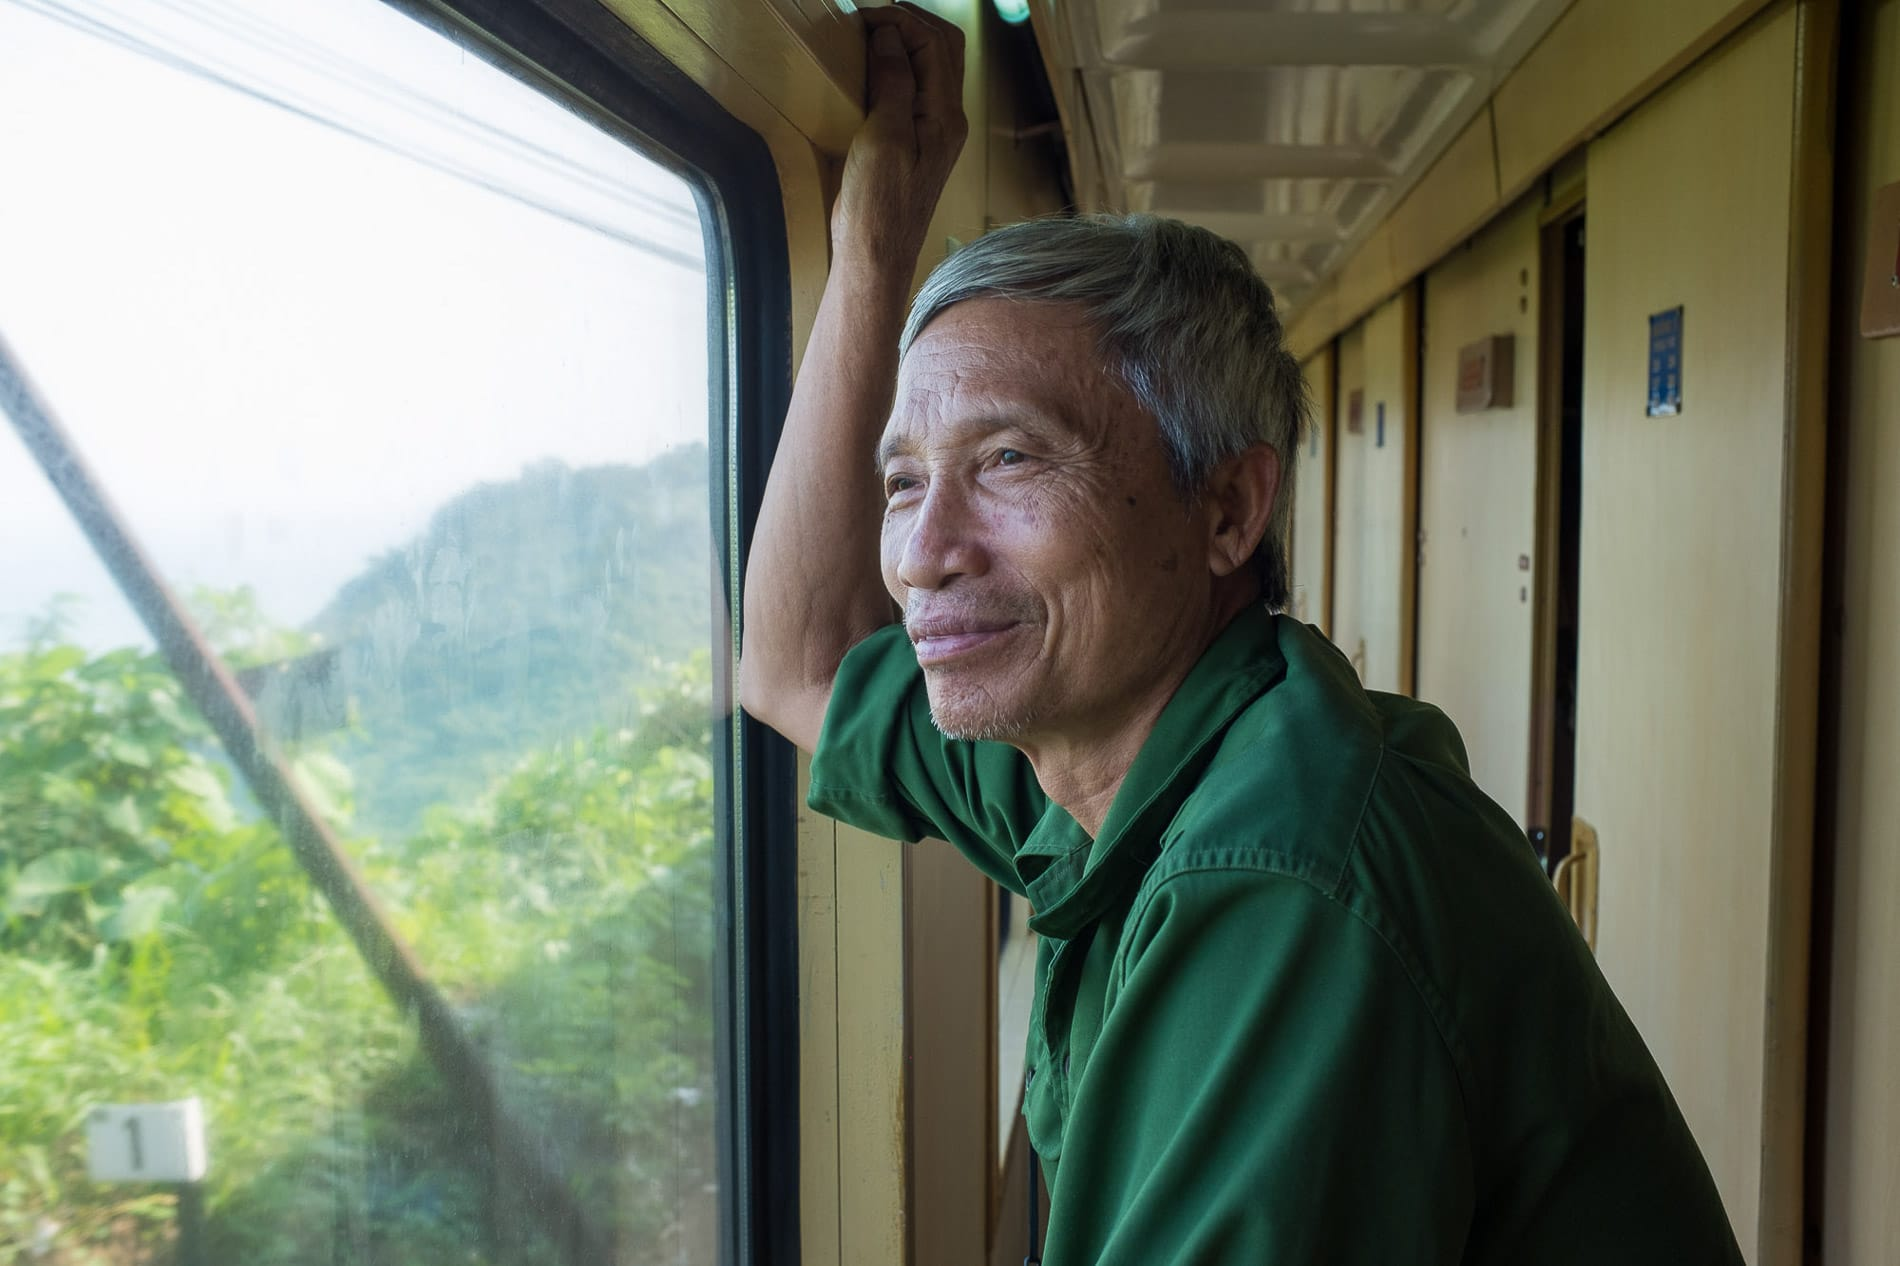 A passenger look out a the scenery from his train ride from Hanoi to Da Nang